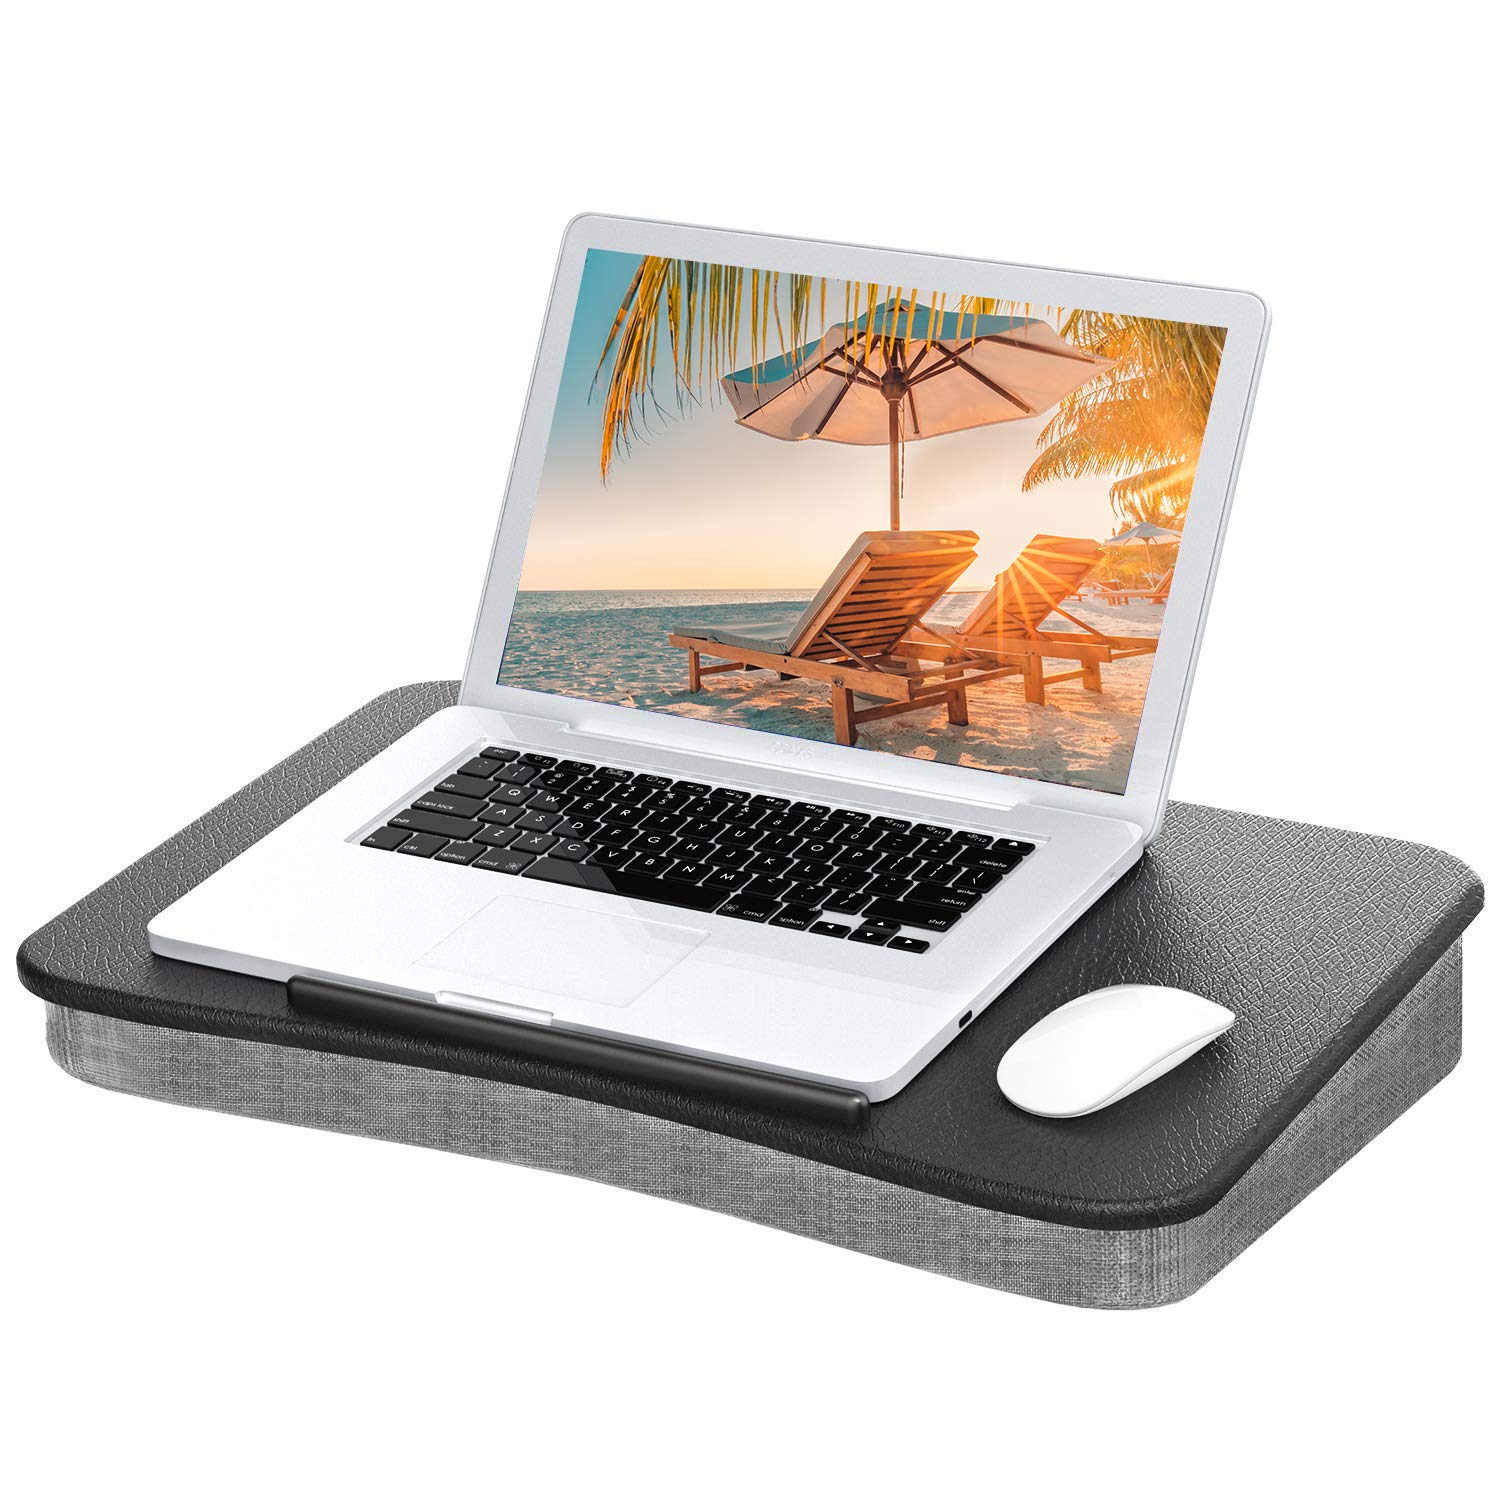 Laptop Lap Desk - Fits up to 15.6 inch Laptop, Portable Lap Desk with Pillow Cushion, Use as Computer Laptop Stand, Book Tablet Stand with Anti-Slip Strip for Home Office Students Traveling by HUANUO